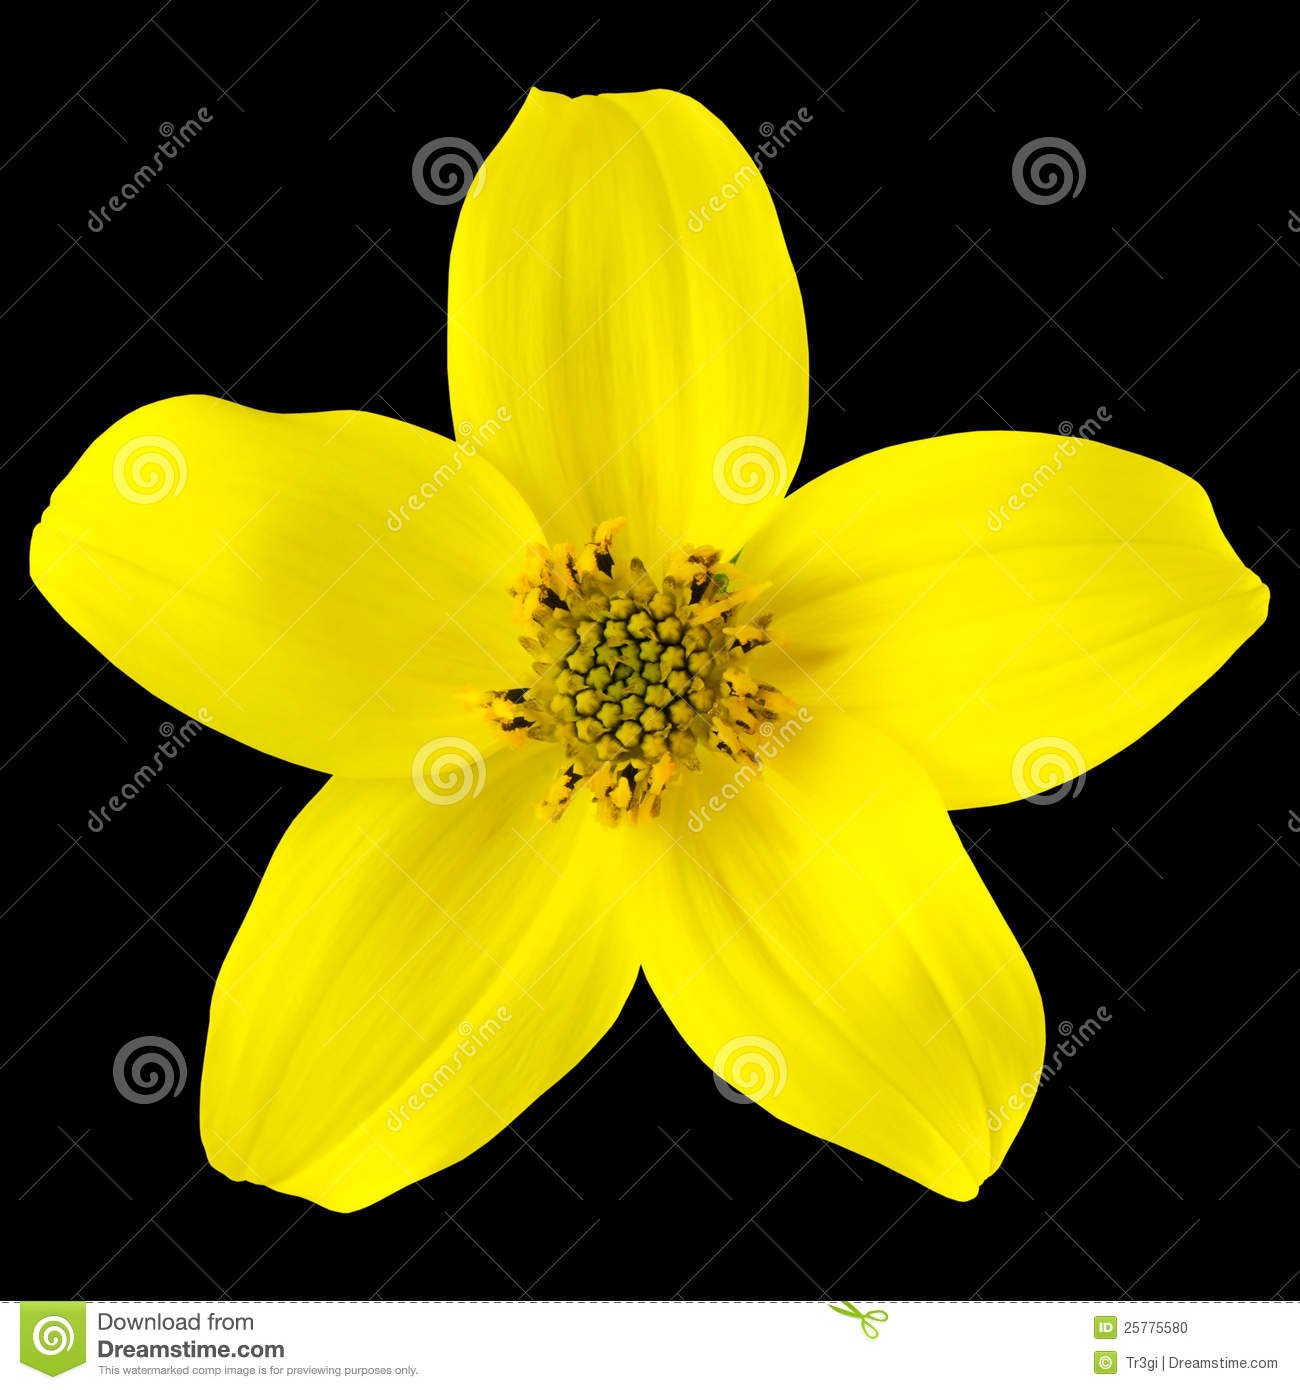 Yellow wild flower with five petals isolated stock photo image of yellow wild flower with five petals isolated mightylinksfo Image collections